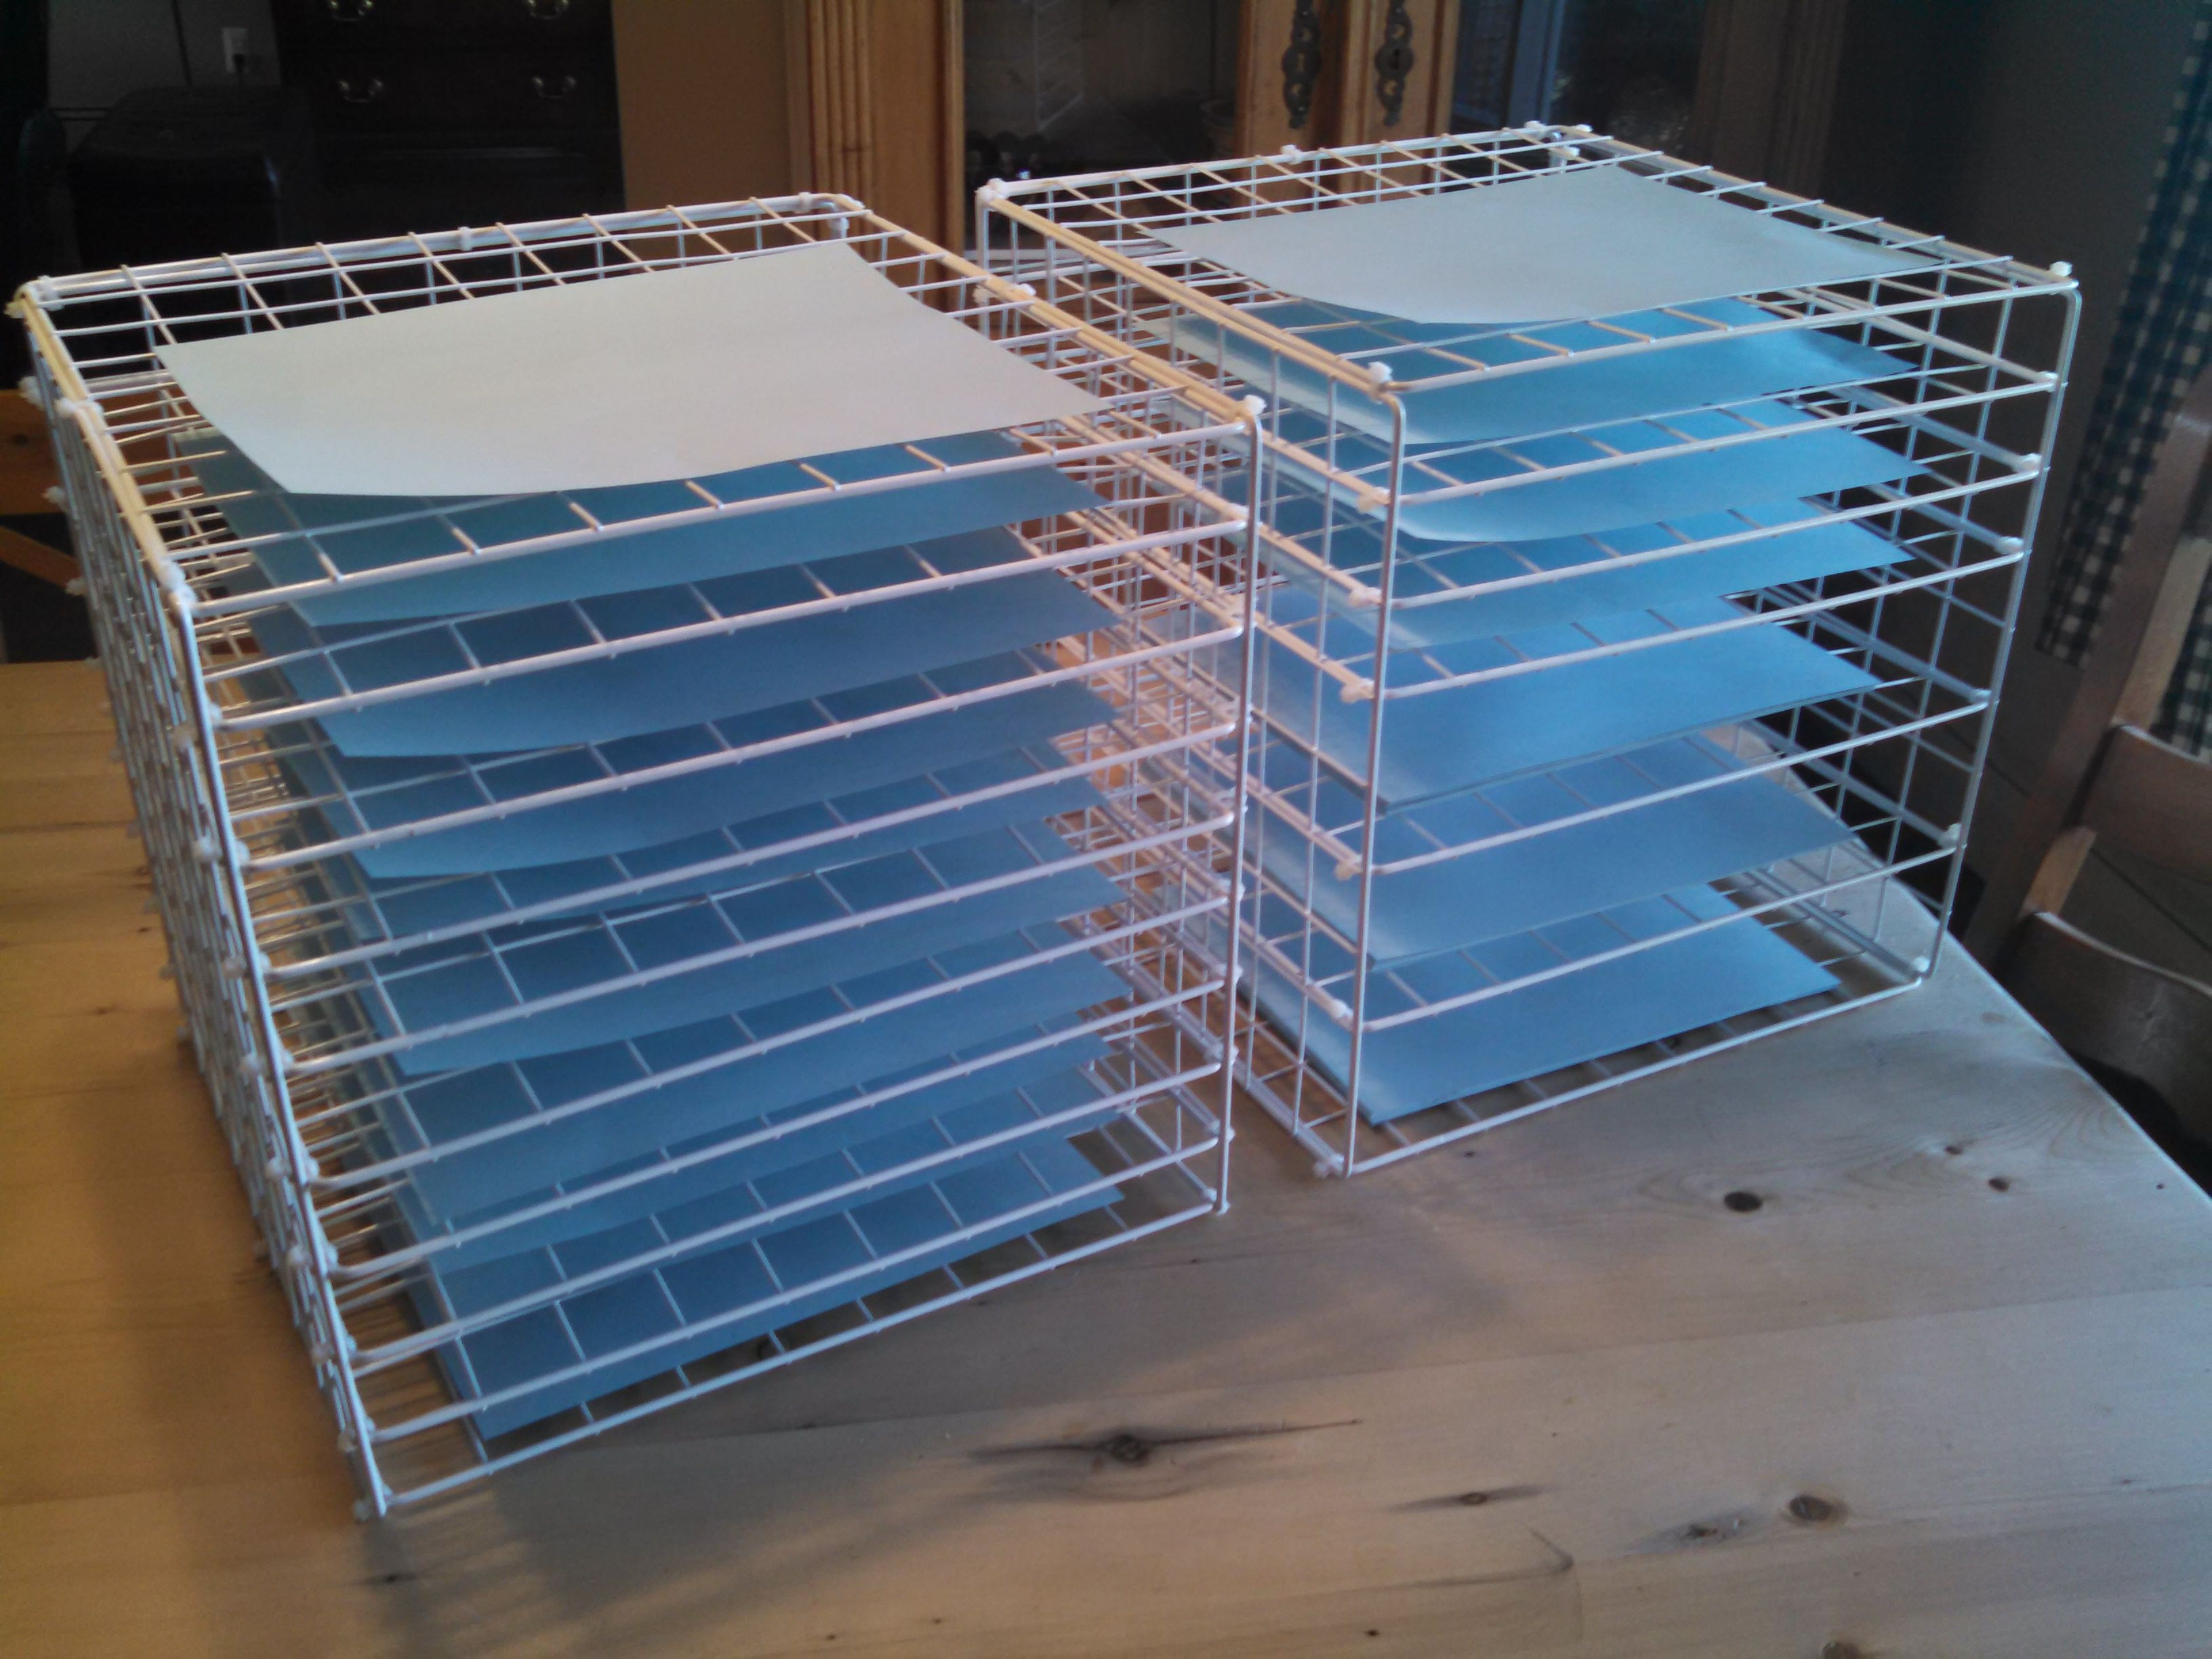 Art Drying Racks Shown With Papers Cost 17 Per Cube Drying